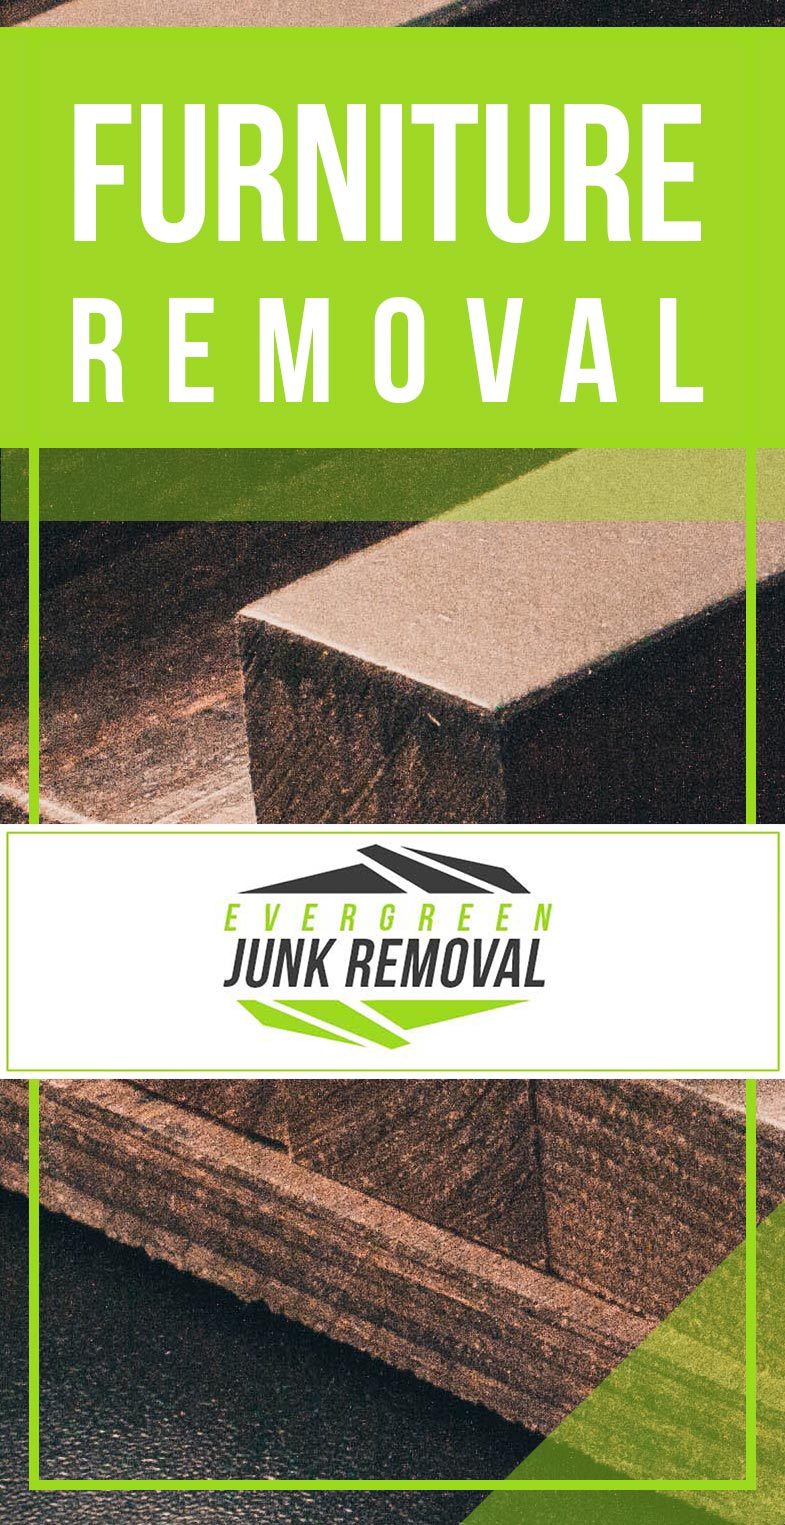 Junk Removal Pine Island Ridge Furniture Removal